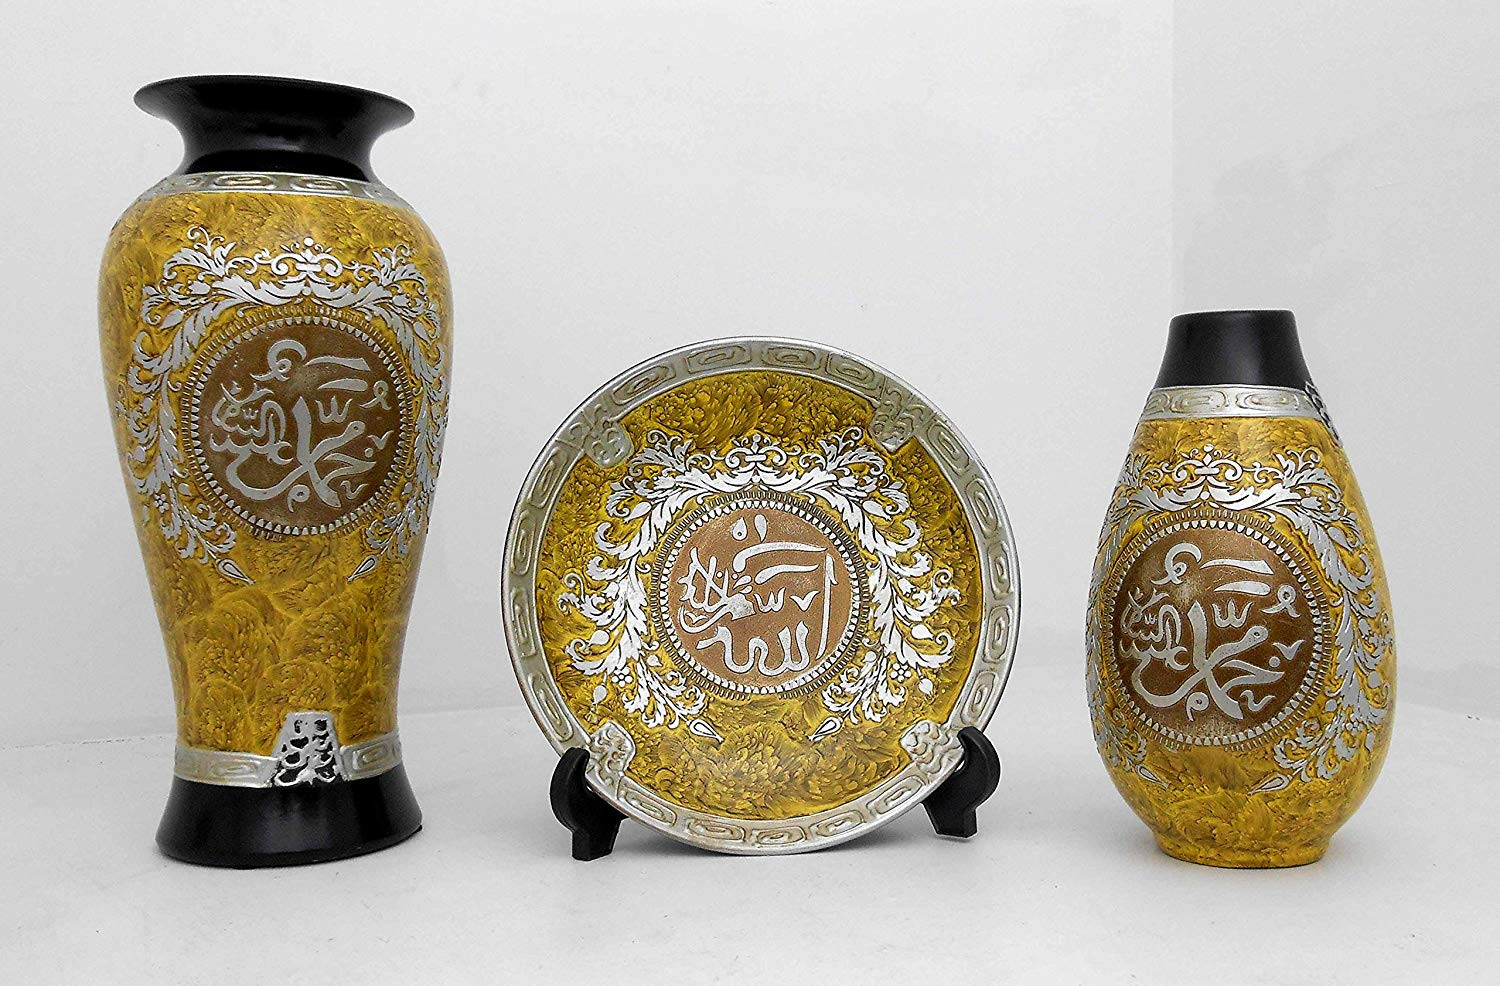 antique silver vases for sale of amazon com islamic muslim set brown ceramic vase allah mohammad intended for amazon com islamic muslim set brown ceramic vase allah mohammad home decorative 1657 home kitchen